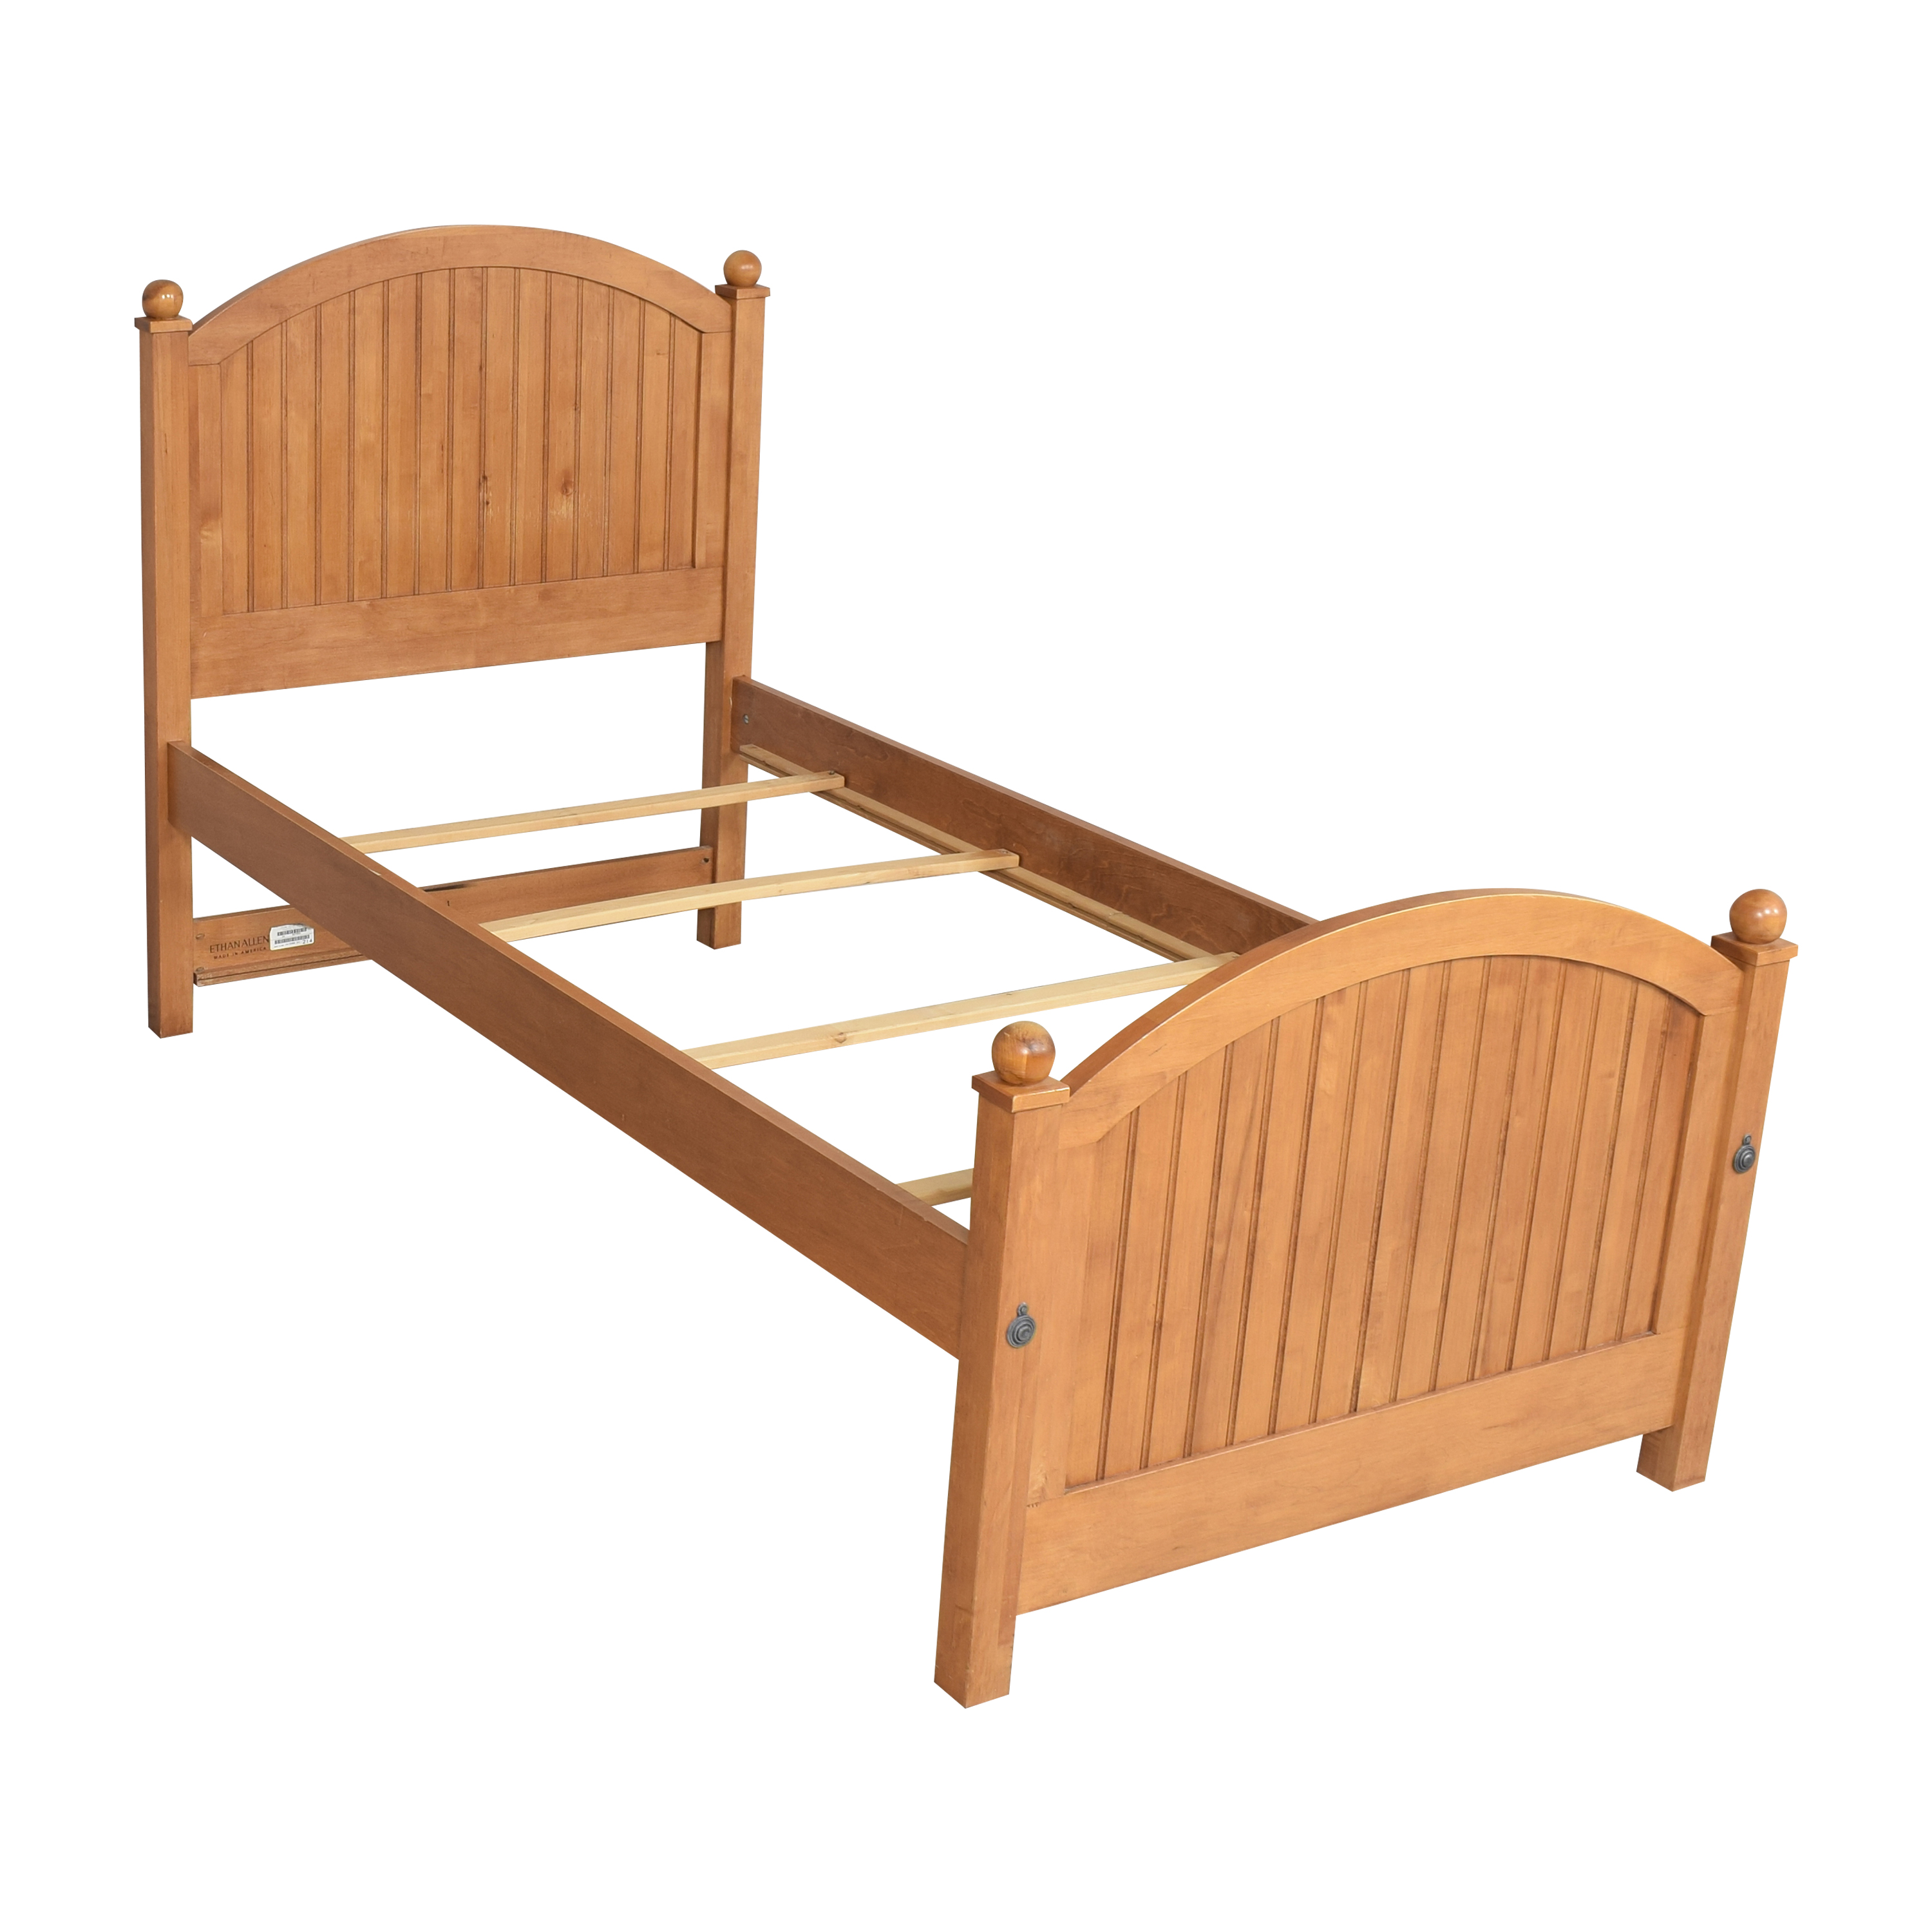 Ethan Allen Ethan Allen Country Colors Twin Bed used